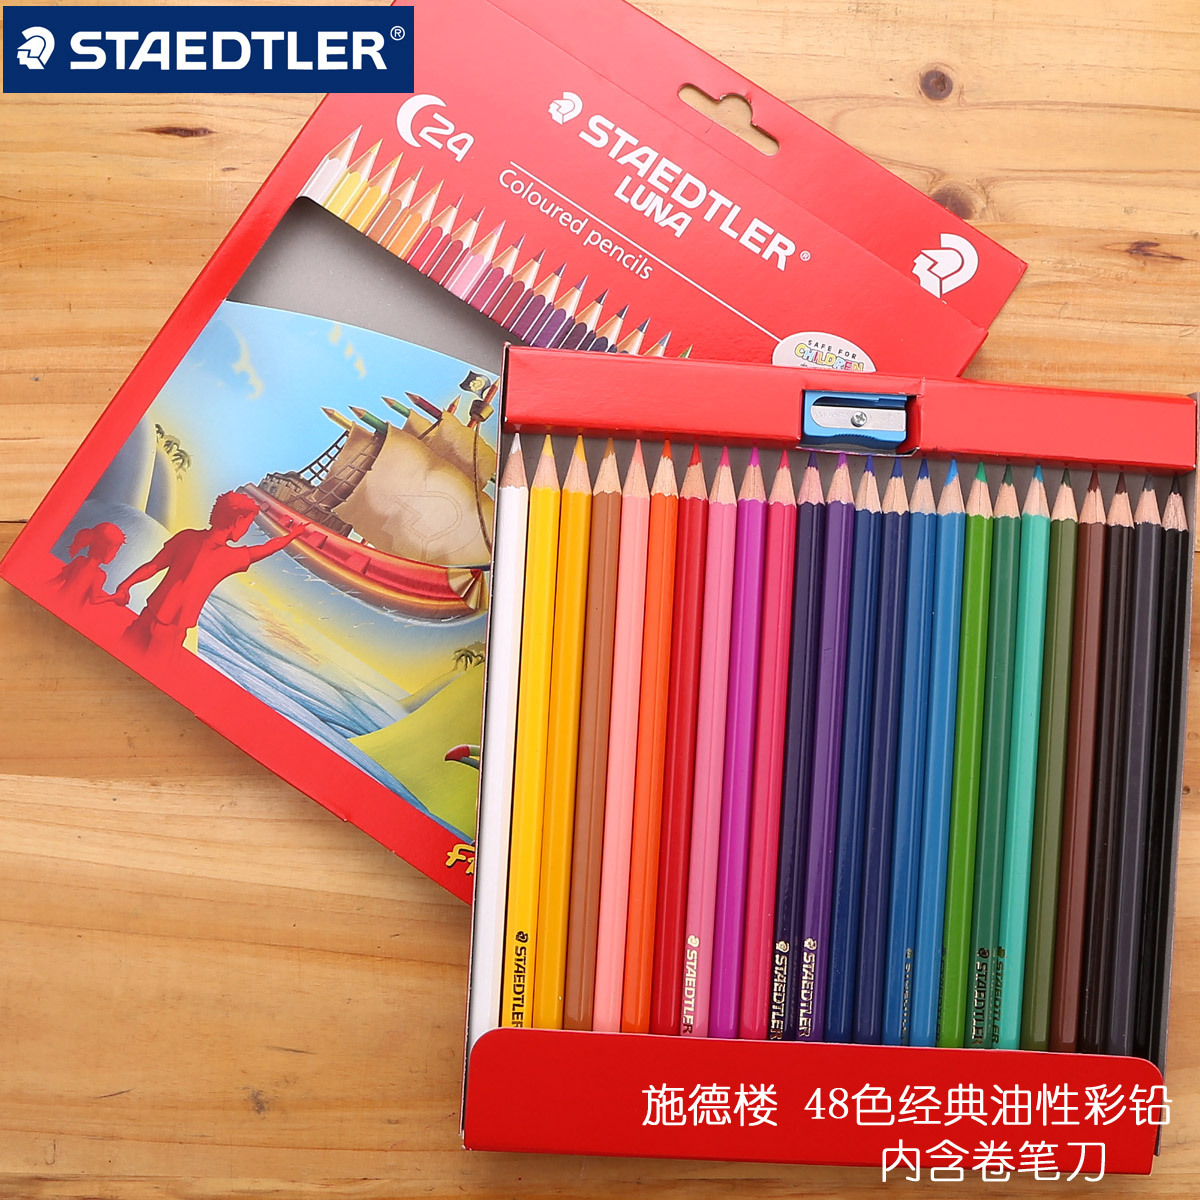 Staedtler STAEDTLER12 color 24 color pencil suit within the classic oily color of lead pencil sharpener to send